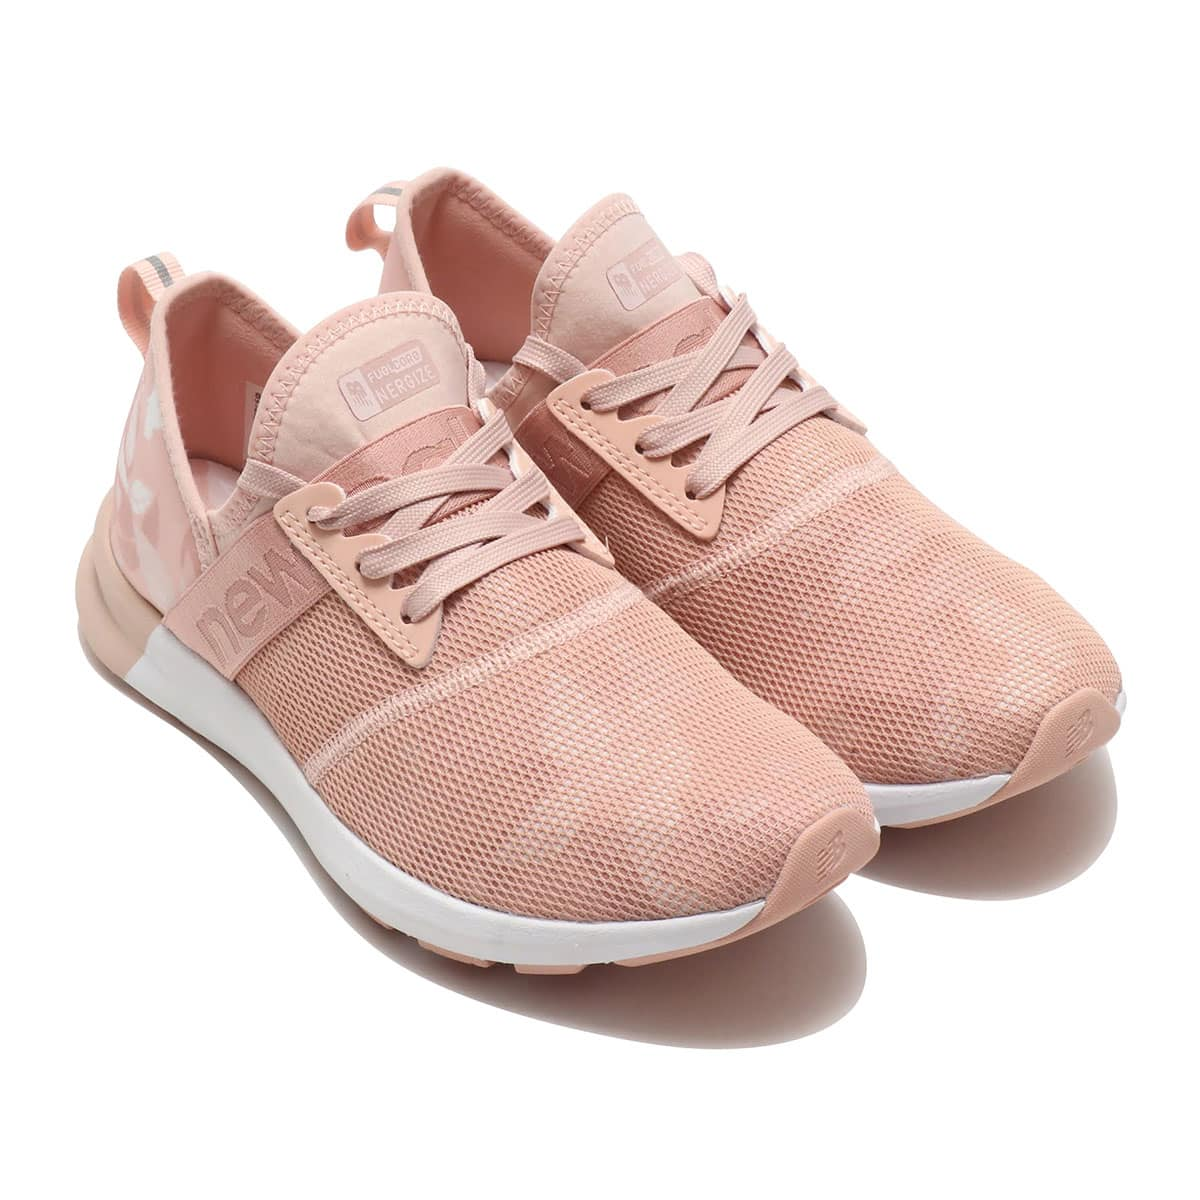 New Balance WXNRGLW PINK 19FW-I_photo_large